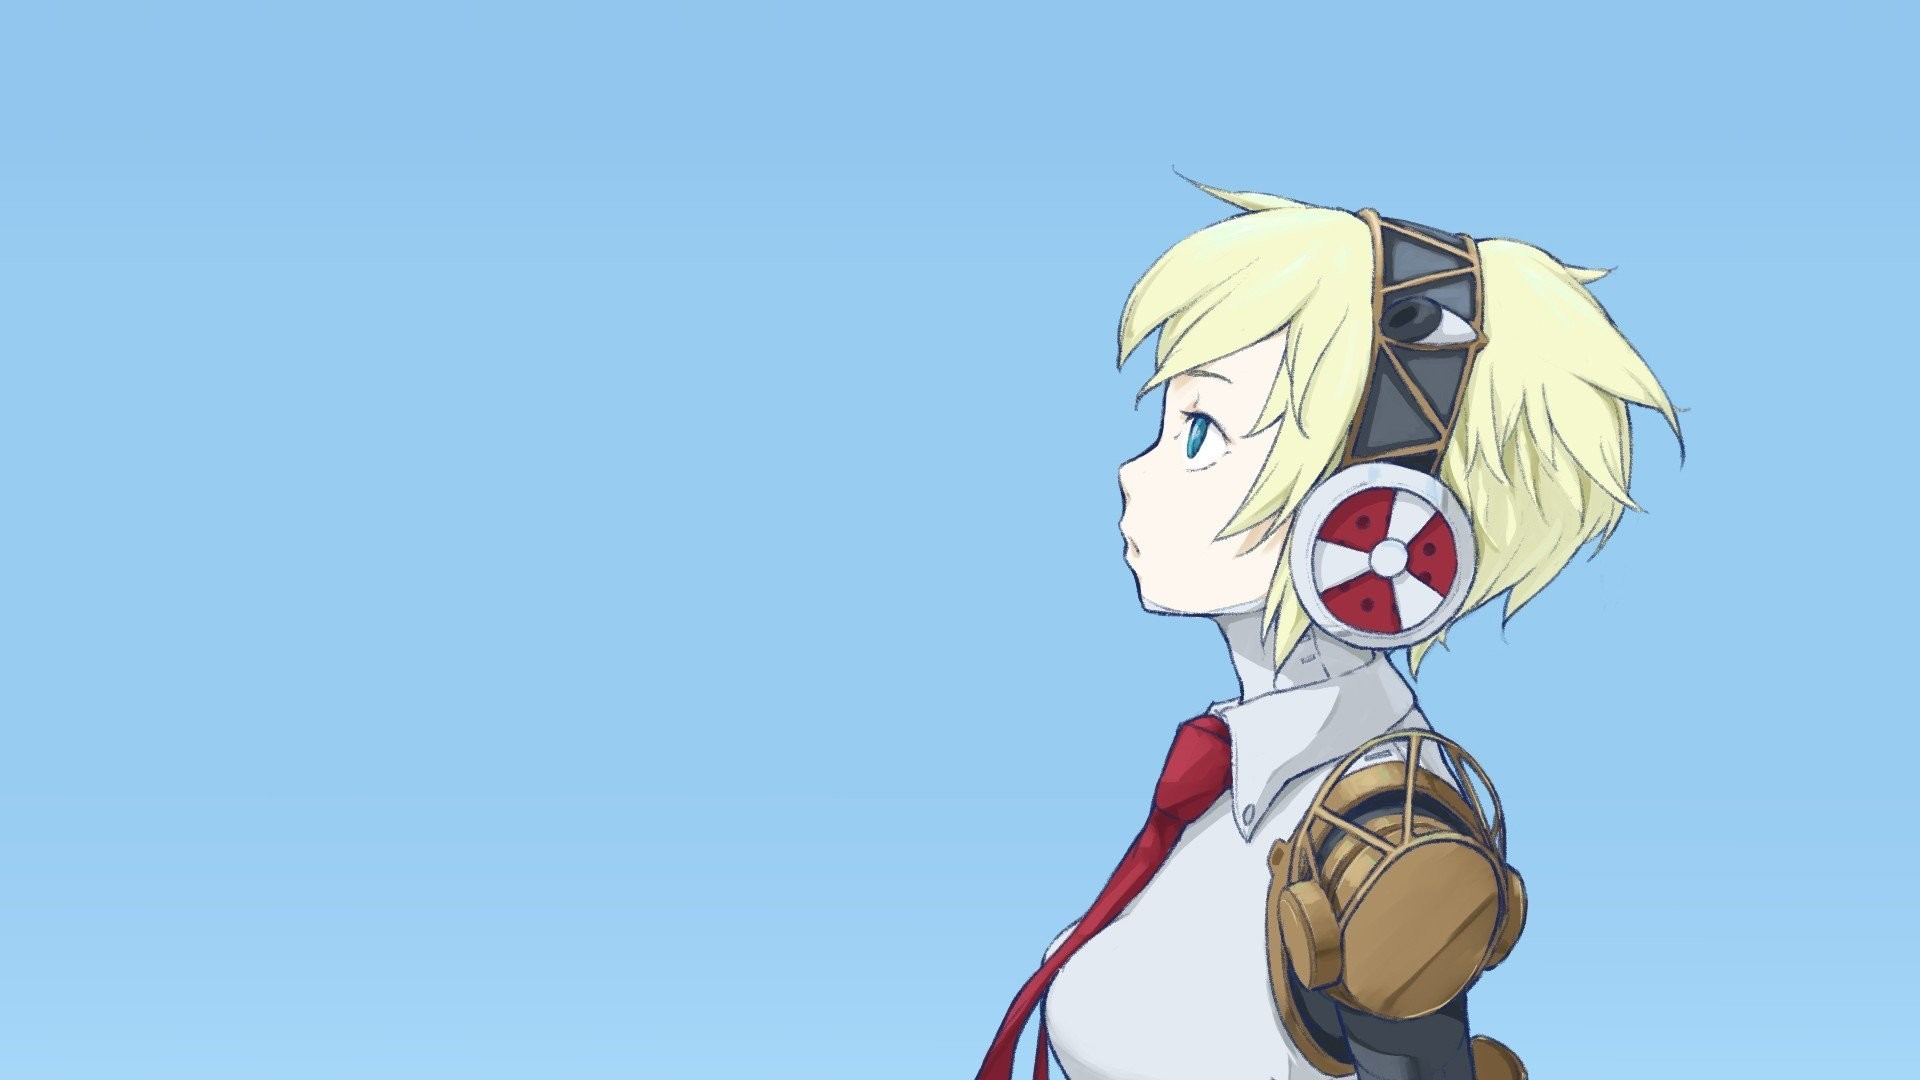 1920x1080  Android Persona series Persona 3 Persona 4: Arena Aigis Persona 3:  FES wallpaper |  | 243497 | WallpaperUP